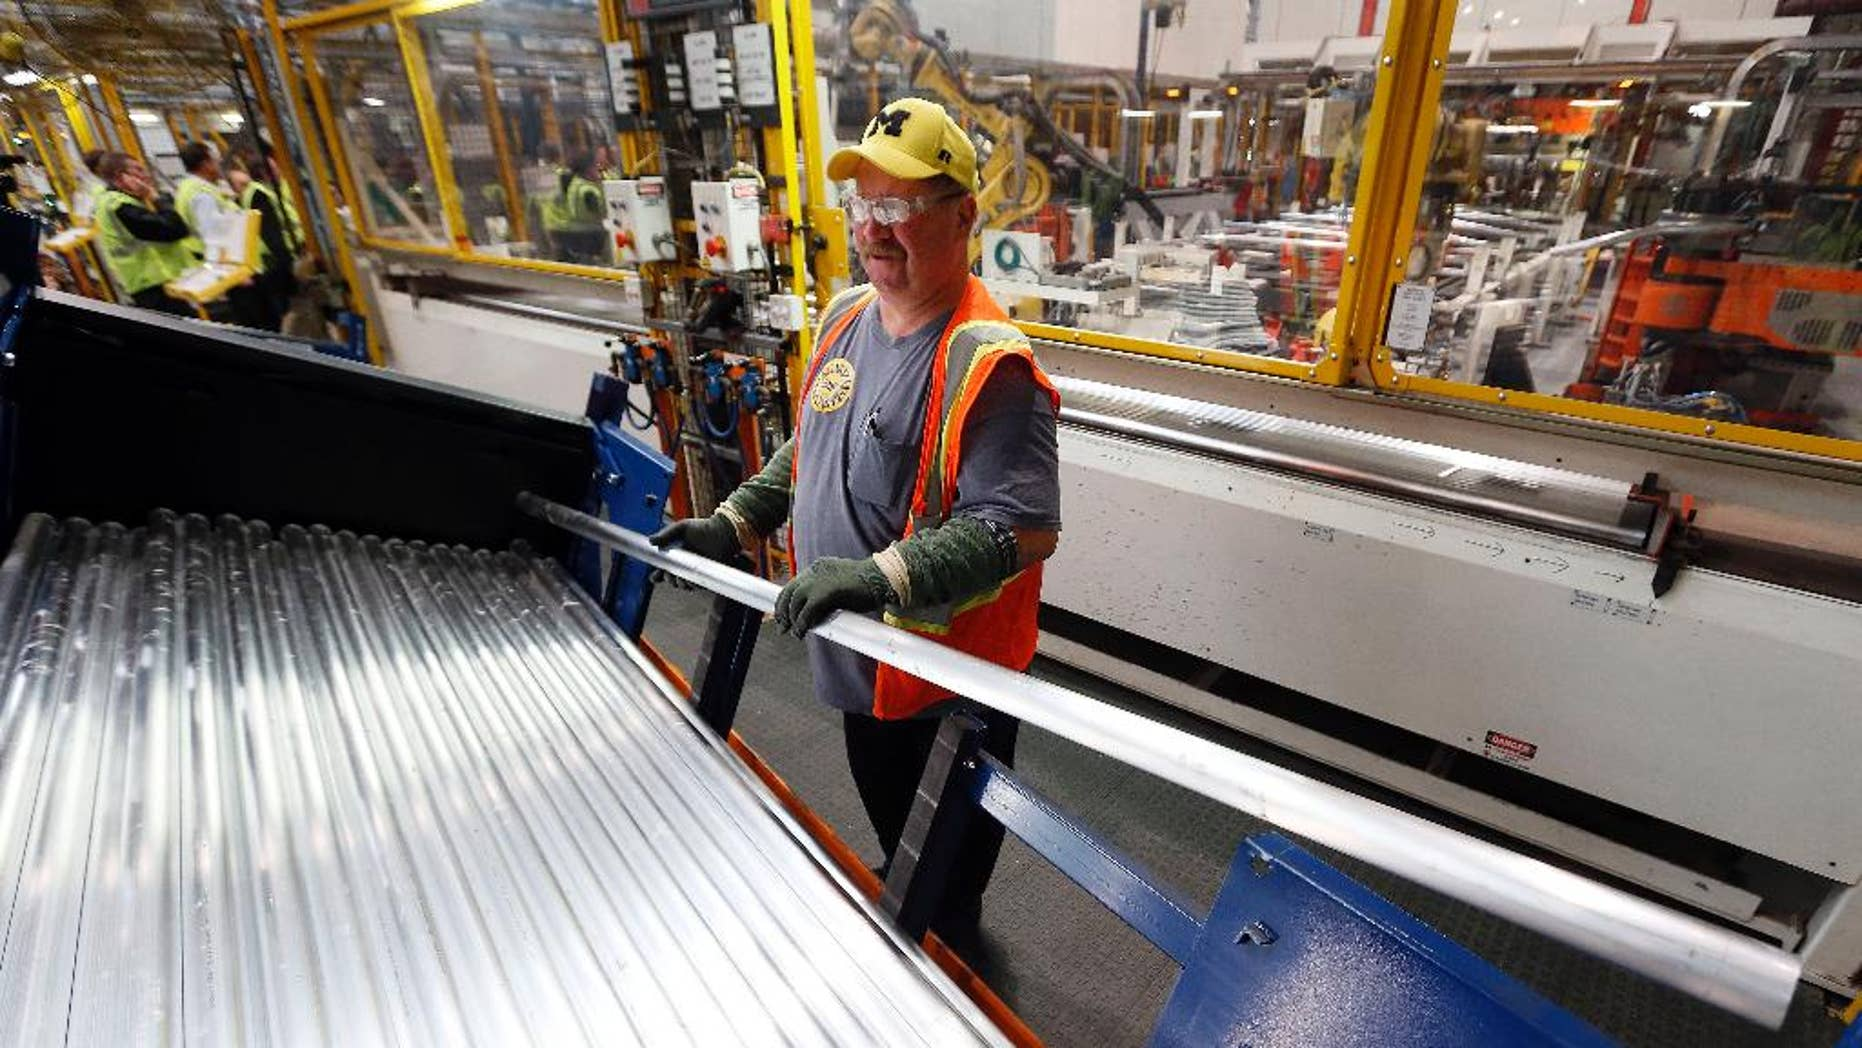 In this Nov. 11, 2014 photo, Tom Peters moves material for roof rails on the production line for the 2015 Ford F-150 at the Dearborn Truck Plant in Dearborn, Mich. The Labor Department releases the Producer Price Index for October on Tuesday, Nov. 18, 2014. (AP Photo/Paul Sancya)